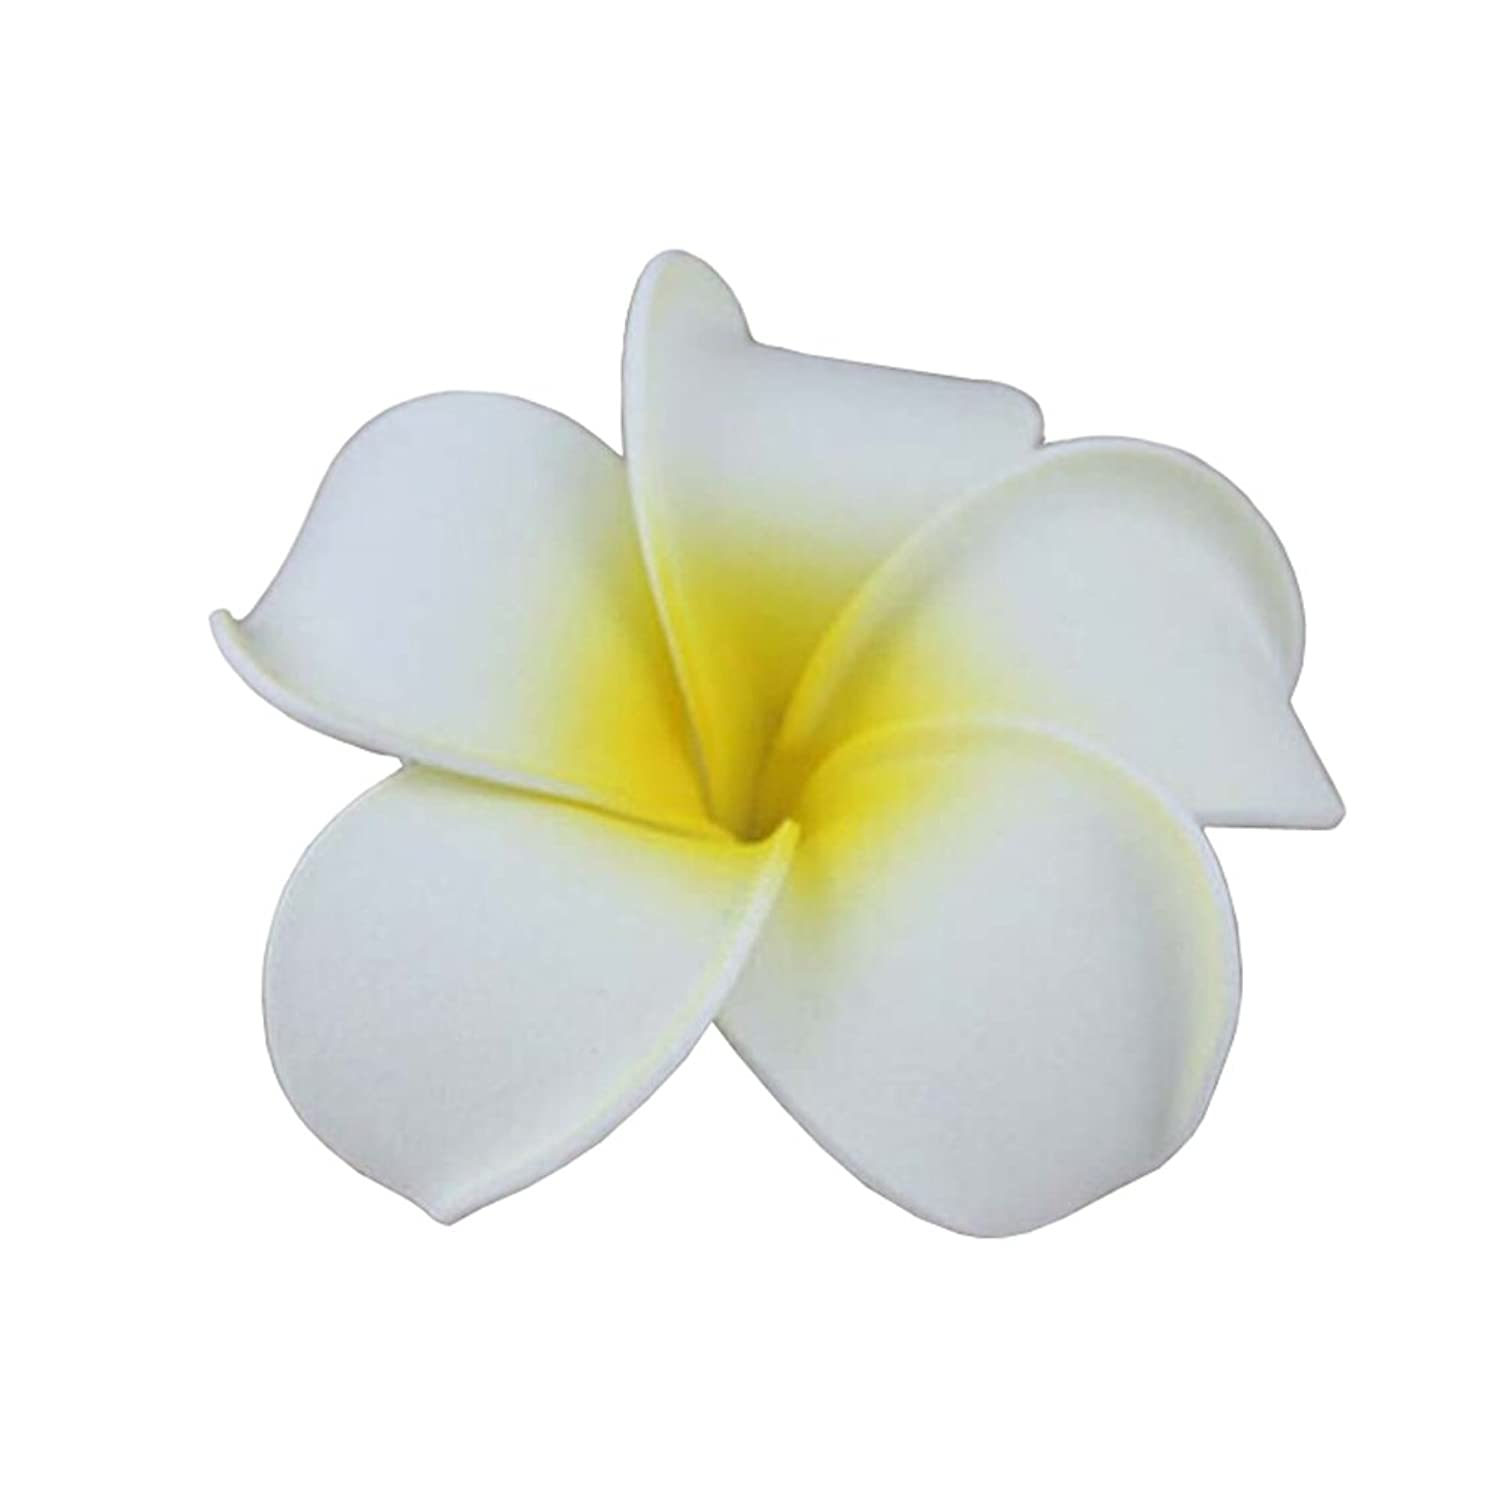 Tonwhar 20 pcs hawaiian plumeria flower foam hair clip accessory for tonwhar 20 pcs hawaiian plumeria flower foam hair clip accessory for beach at amazon womens clothing store izmirmasajfo Choice Image